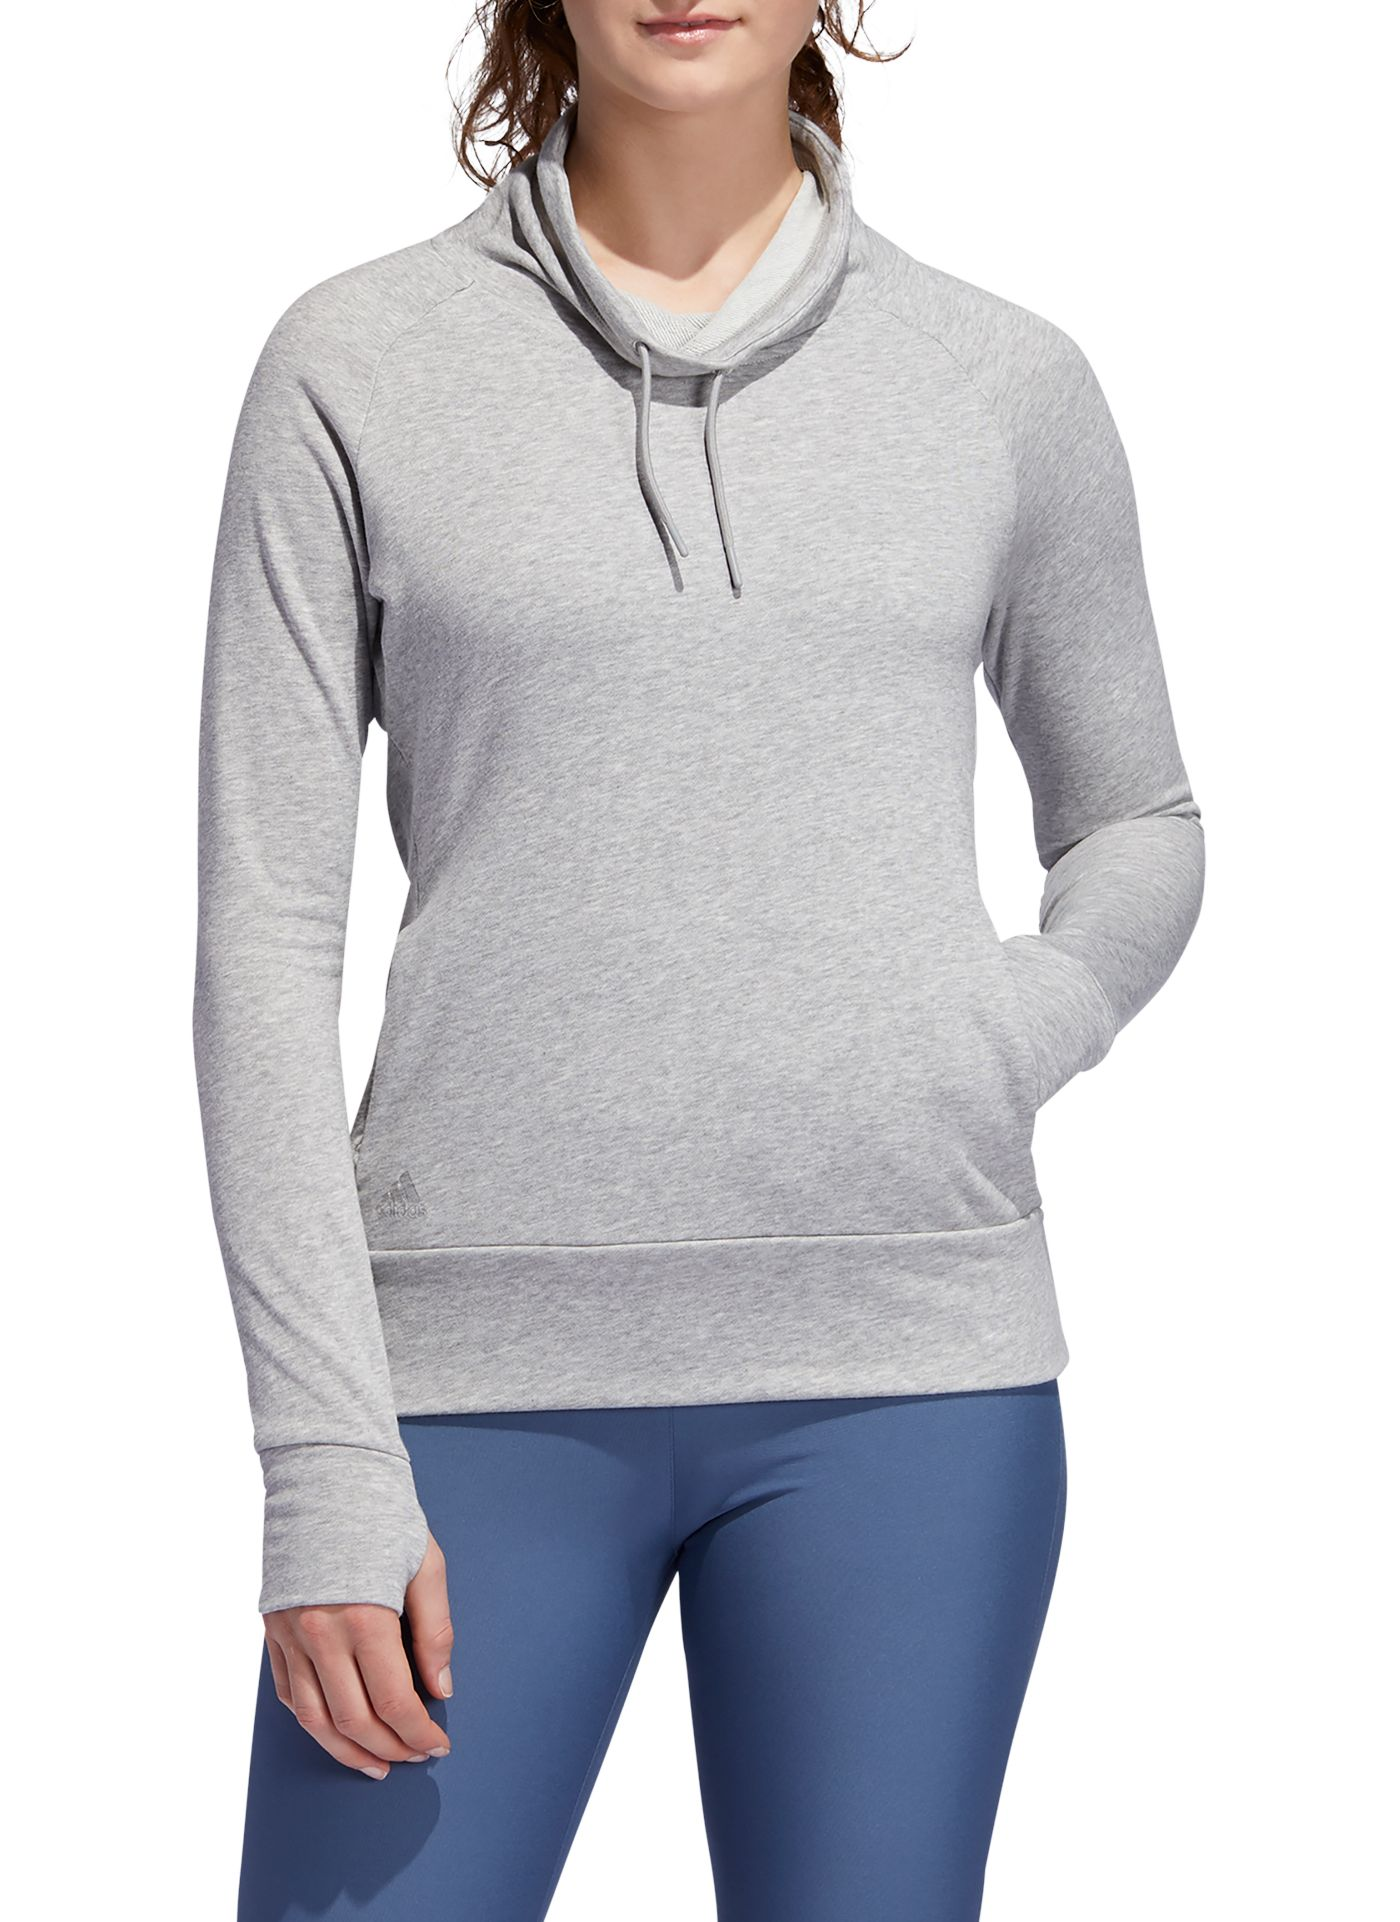 adidas Women's Cowl Neck Golf Sweatshirt